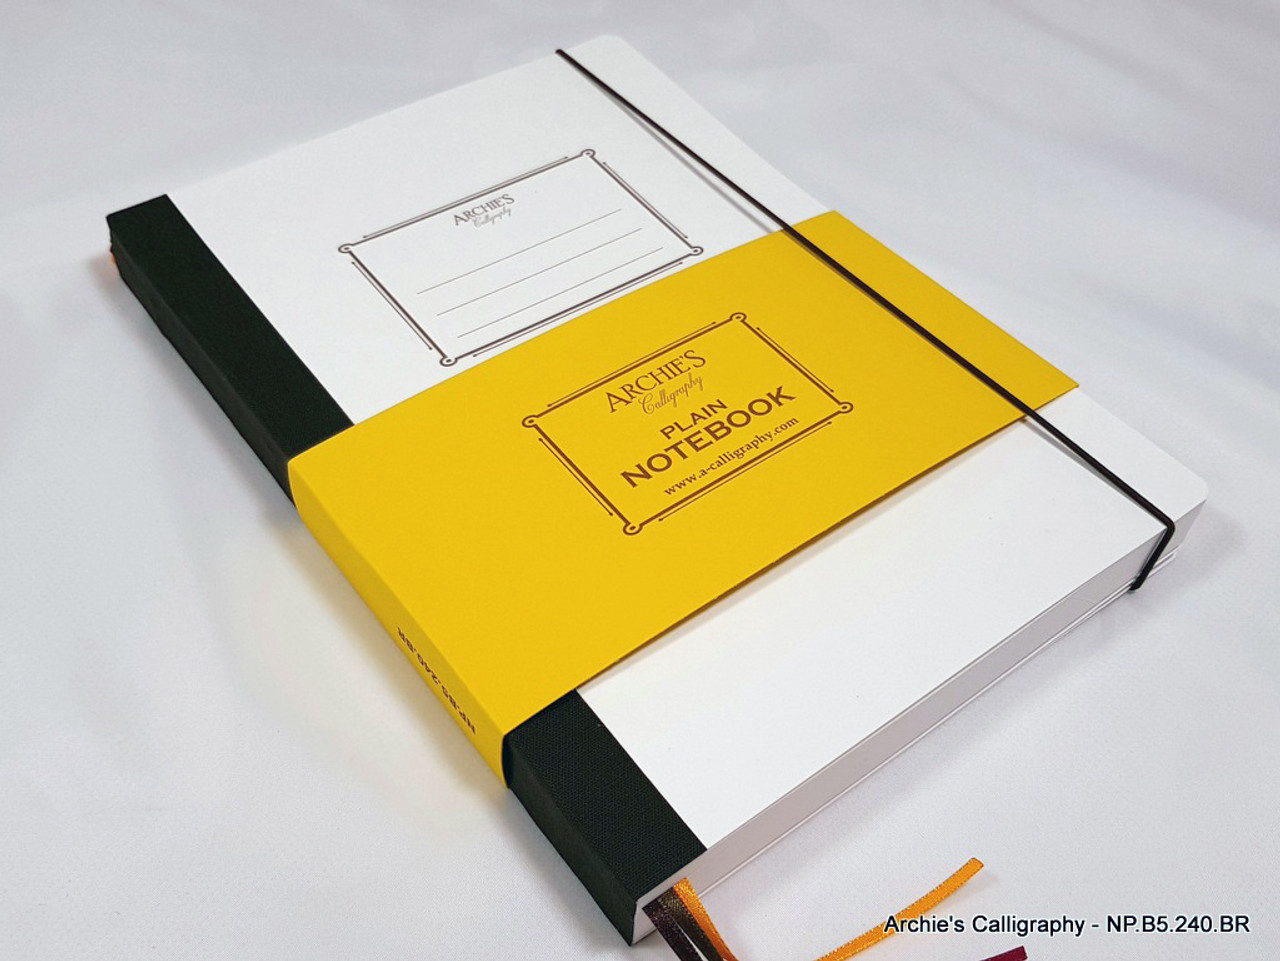 Archie's Calligraphy notebook refill, plain paper